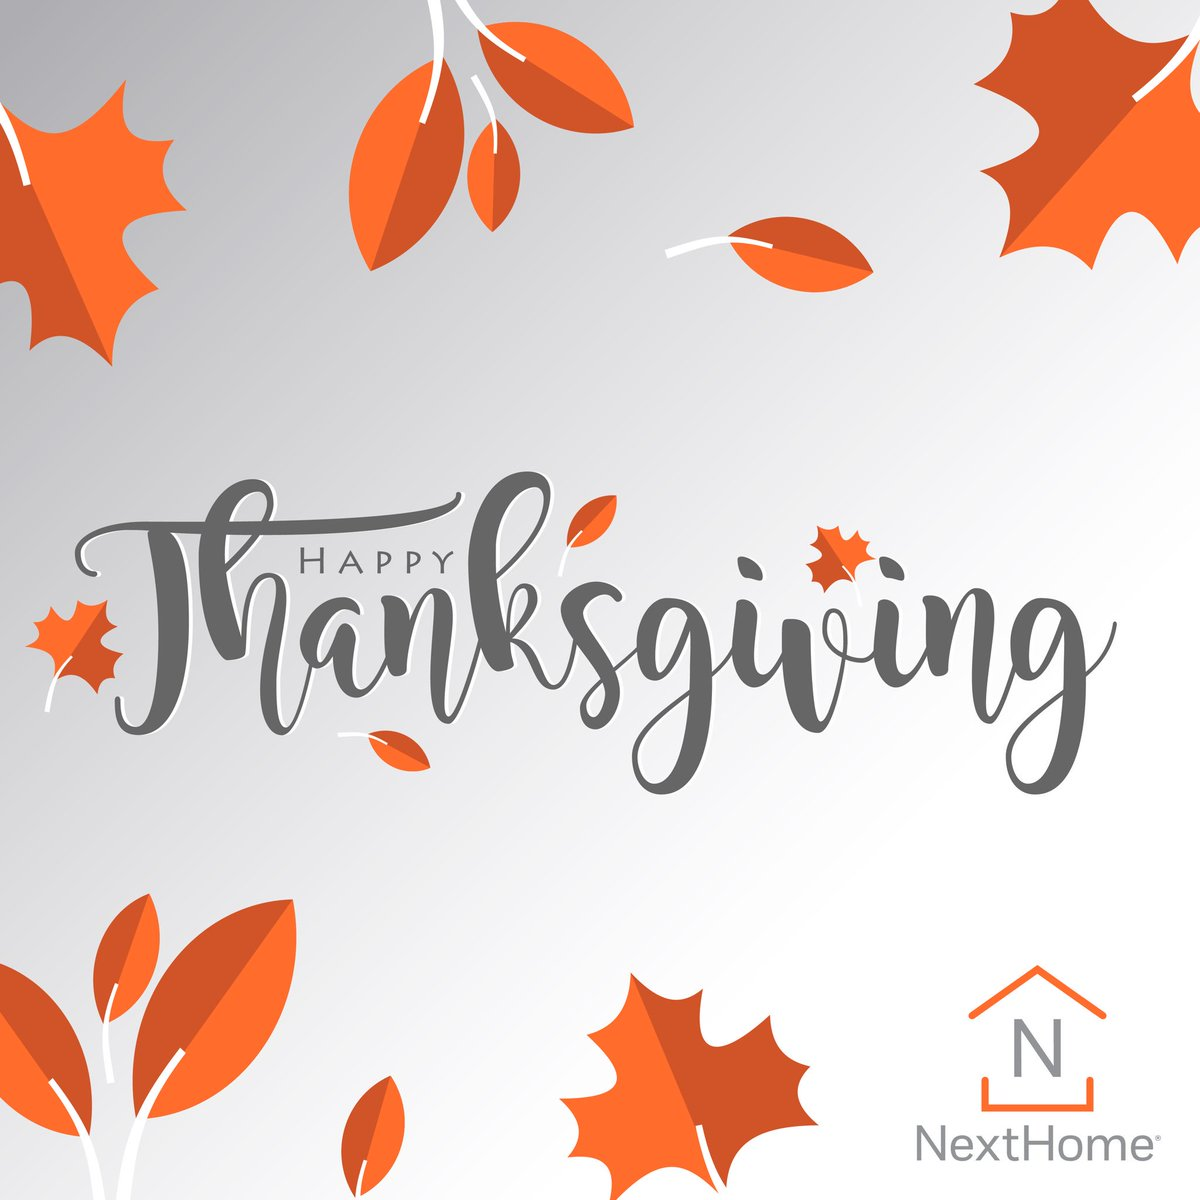 Nexthome Inc On Twitter Theres So Much To Be Thankful For This